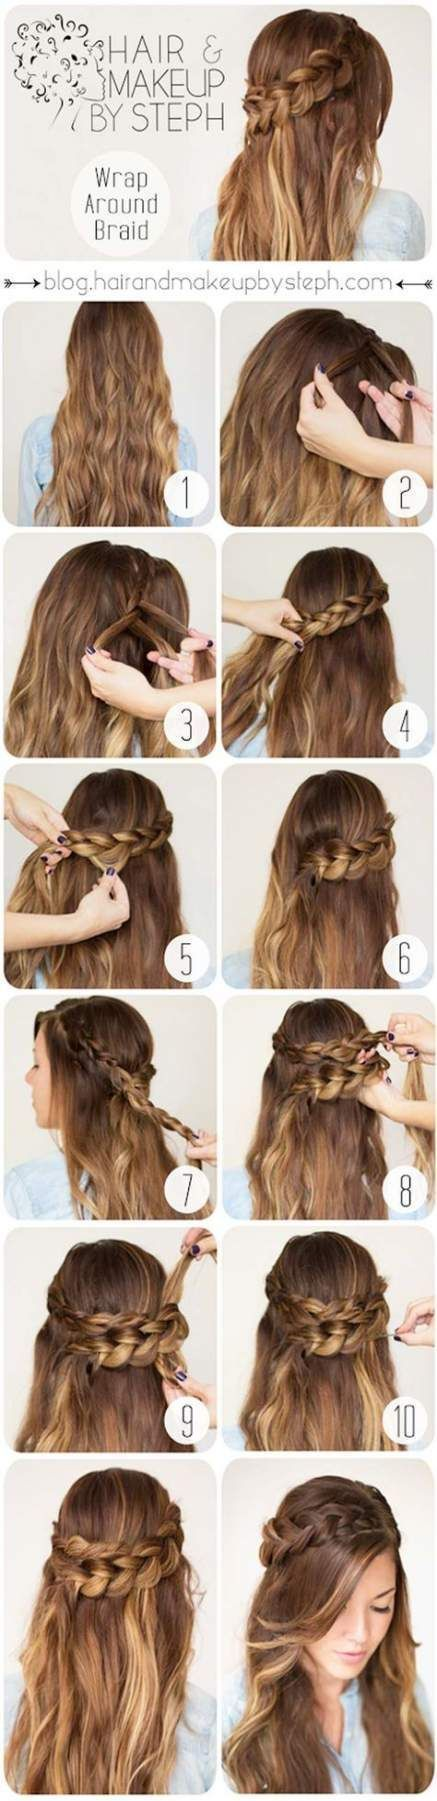 58 Ideas Hairstyles Easy Quick Lazy Hair For 2019, #hairstyles #ideas #quick